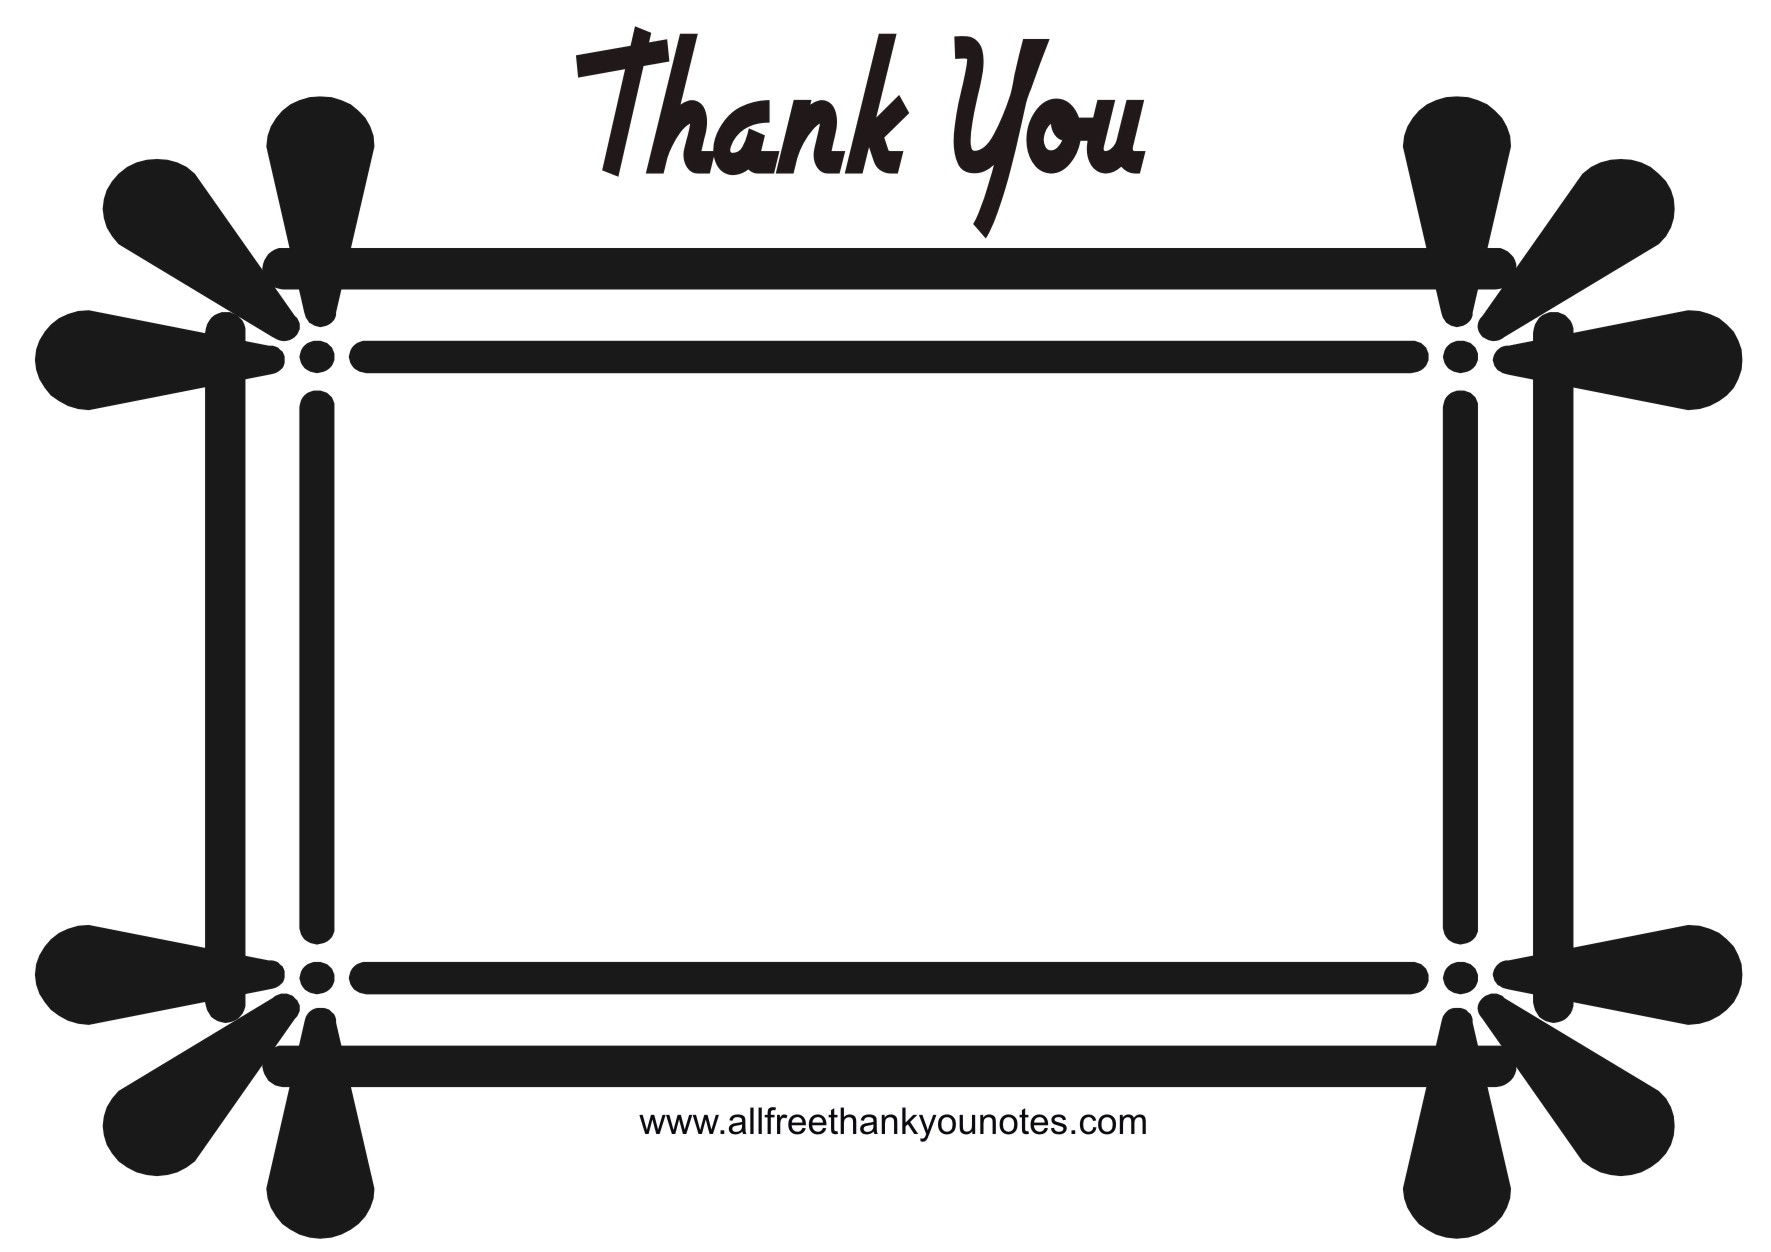 Thank you  black and white thank you card clipart black and white clipartxtras 2